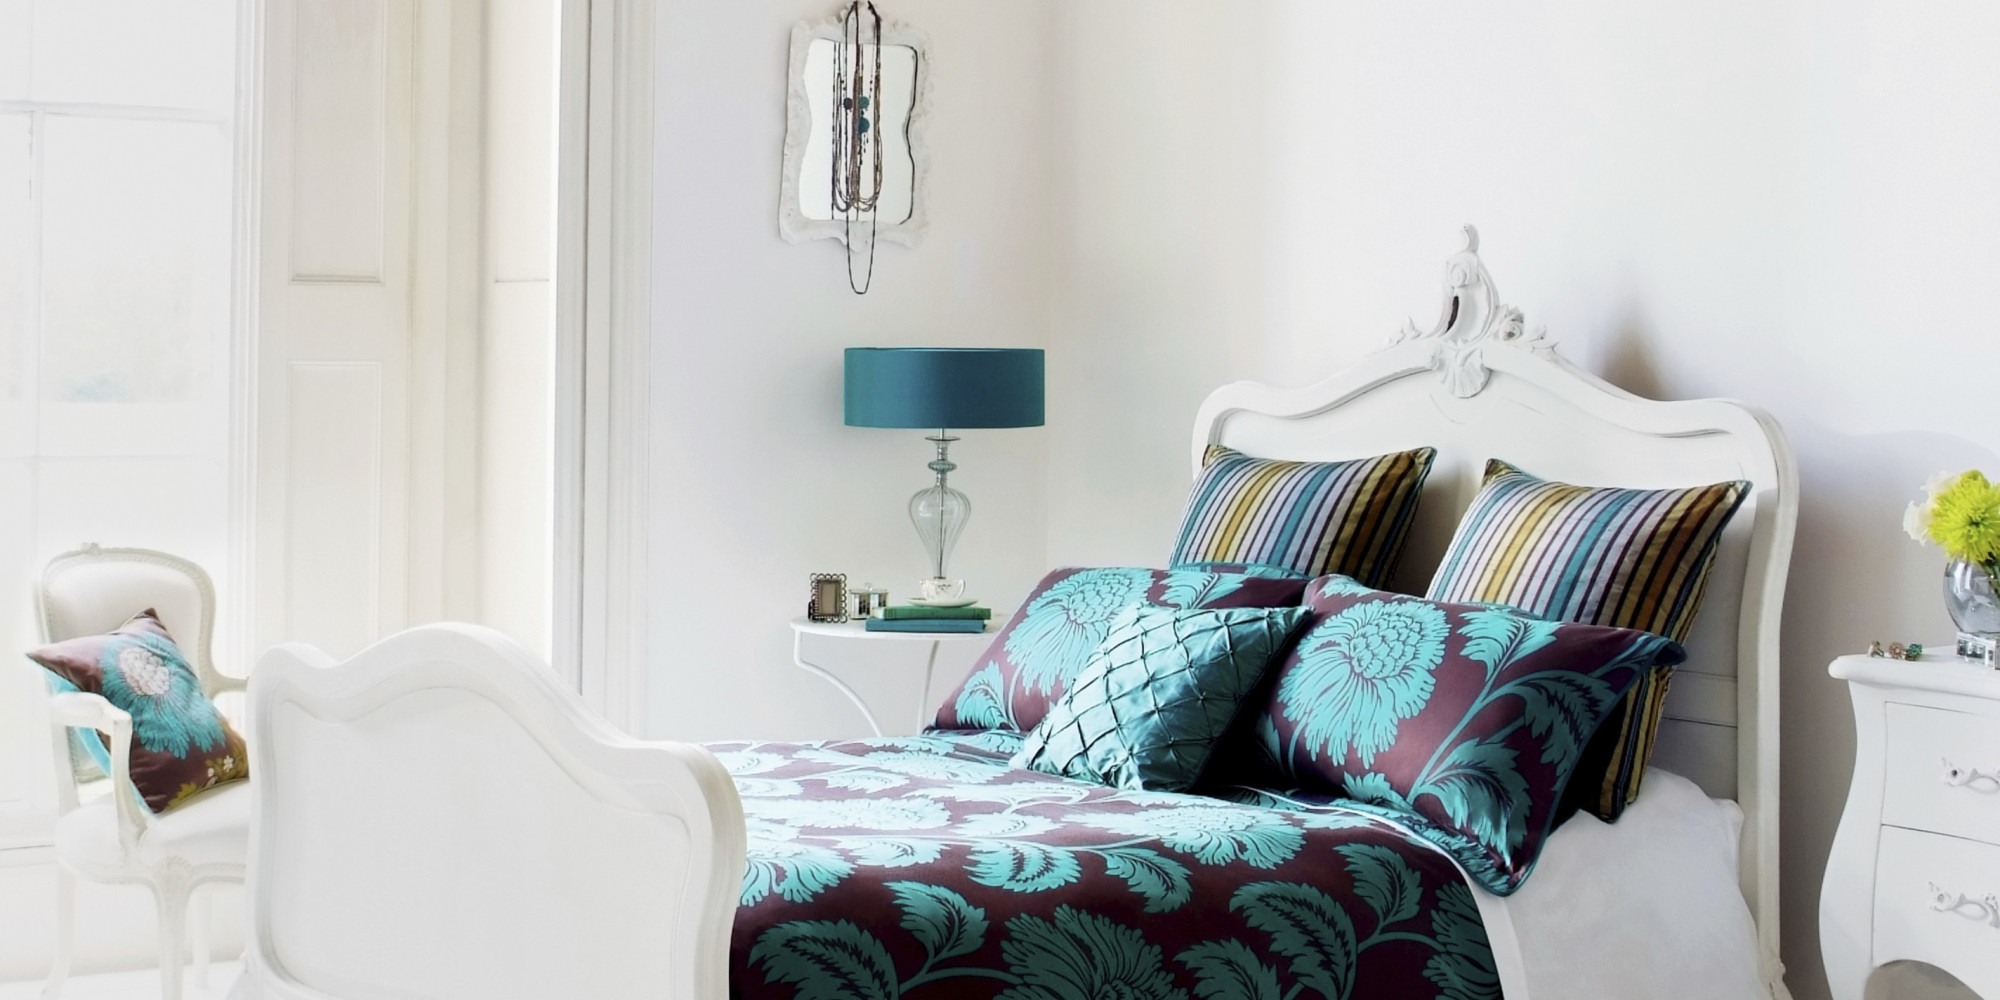 Achieve Better Sleep 7 Tips for a Cleaner and Healthier Bedroom  HuffPost